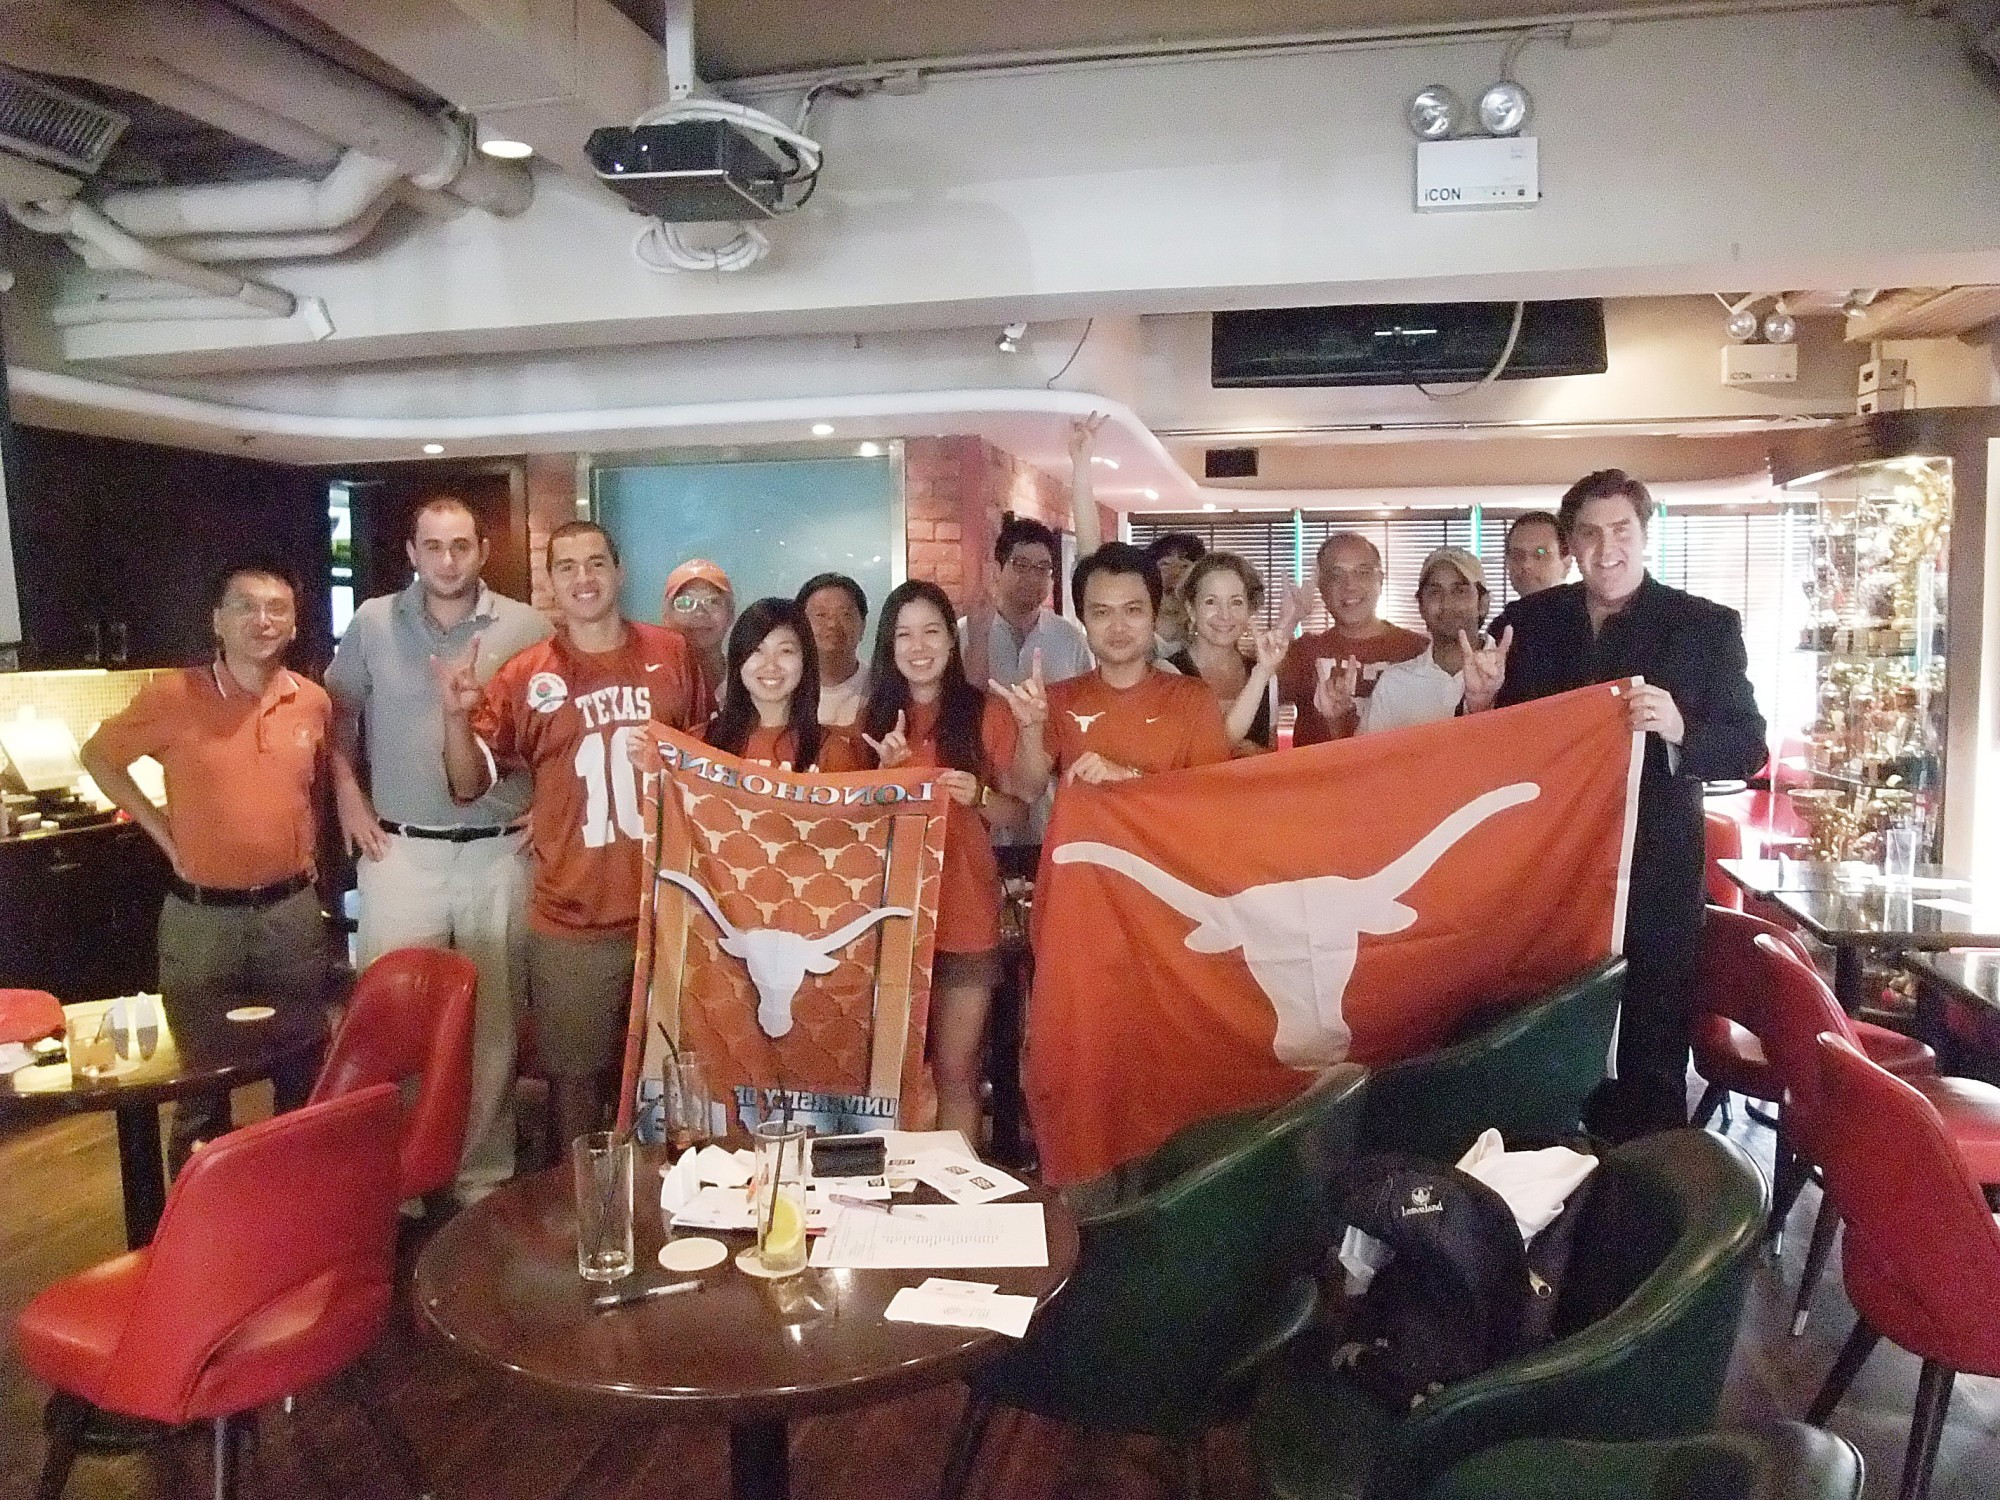 Texas at Oklahoma State Live Viewing Party